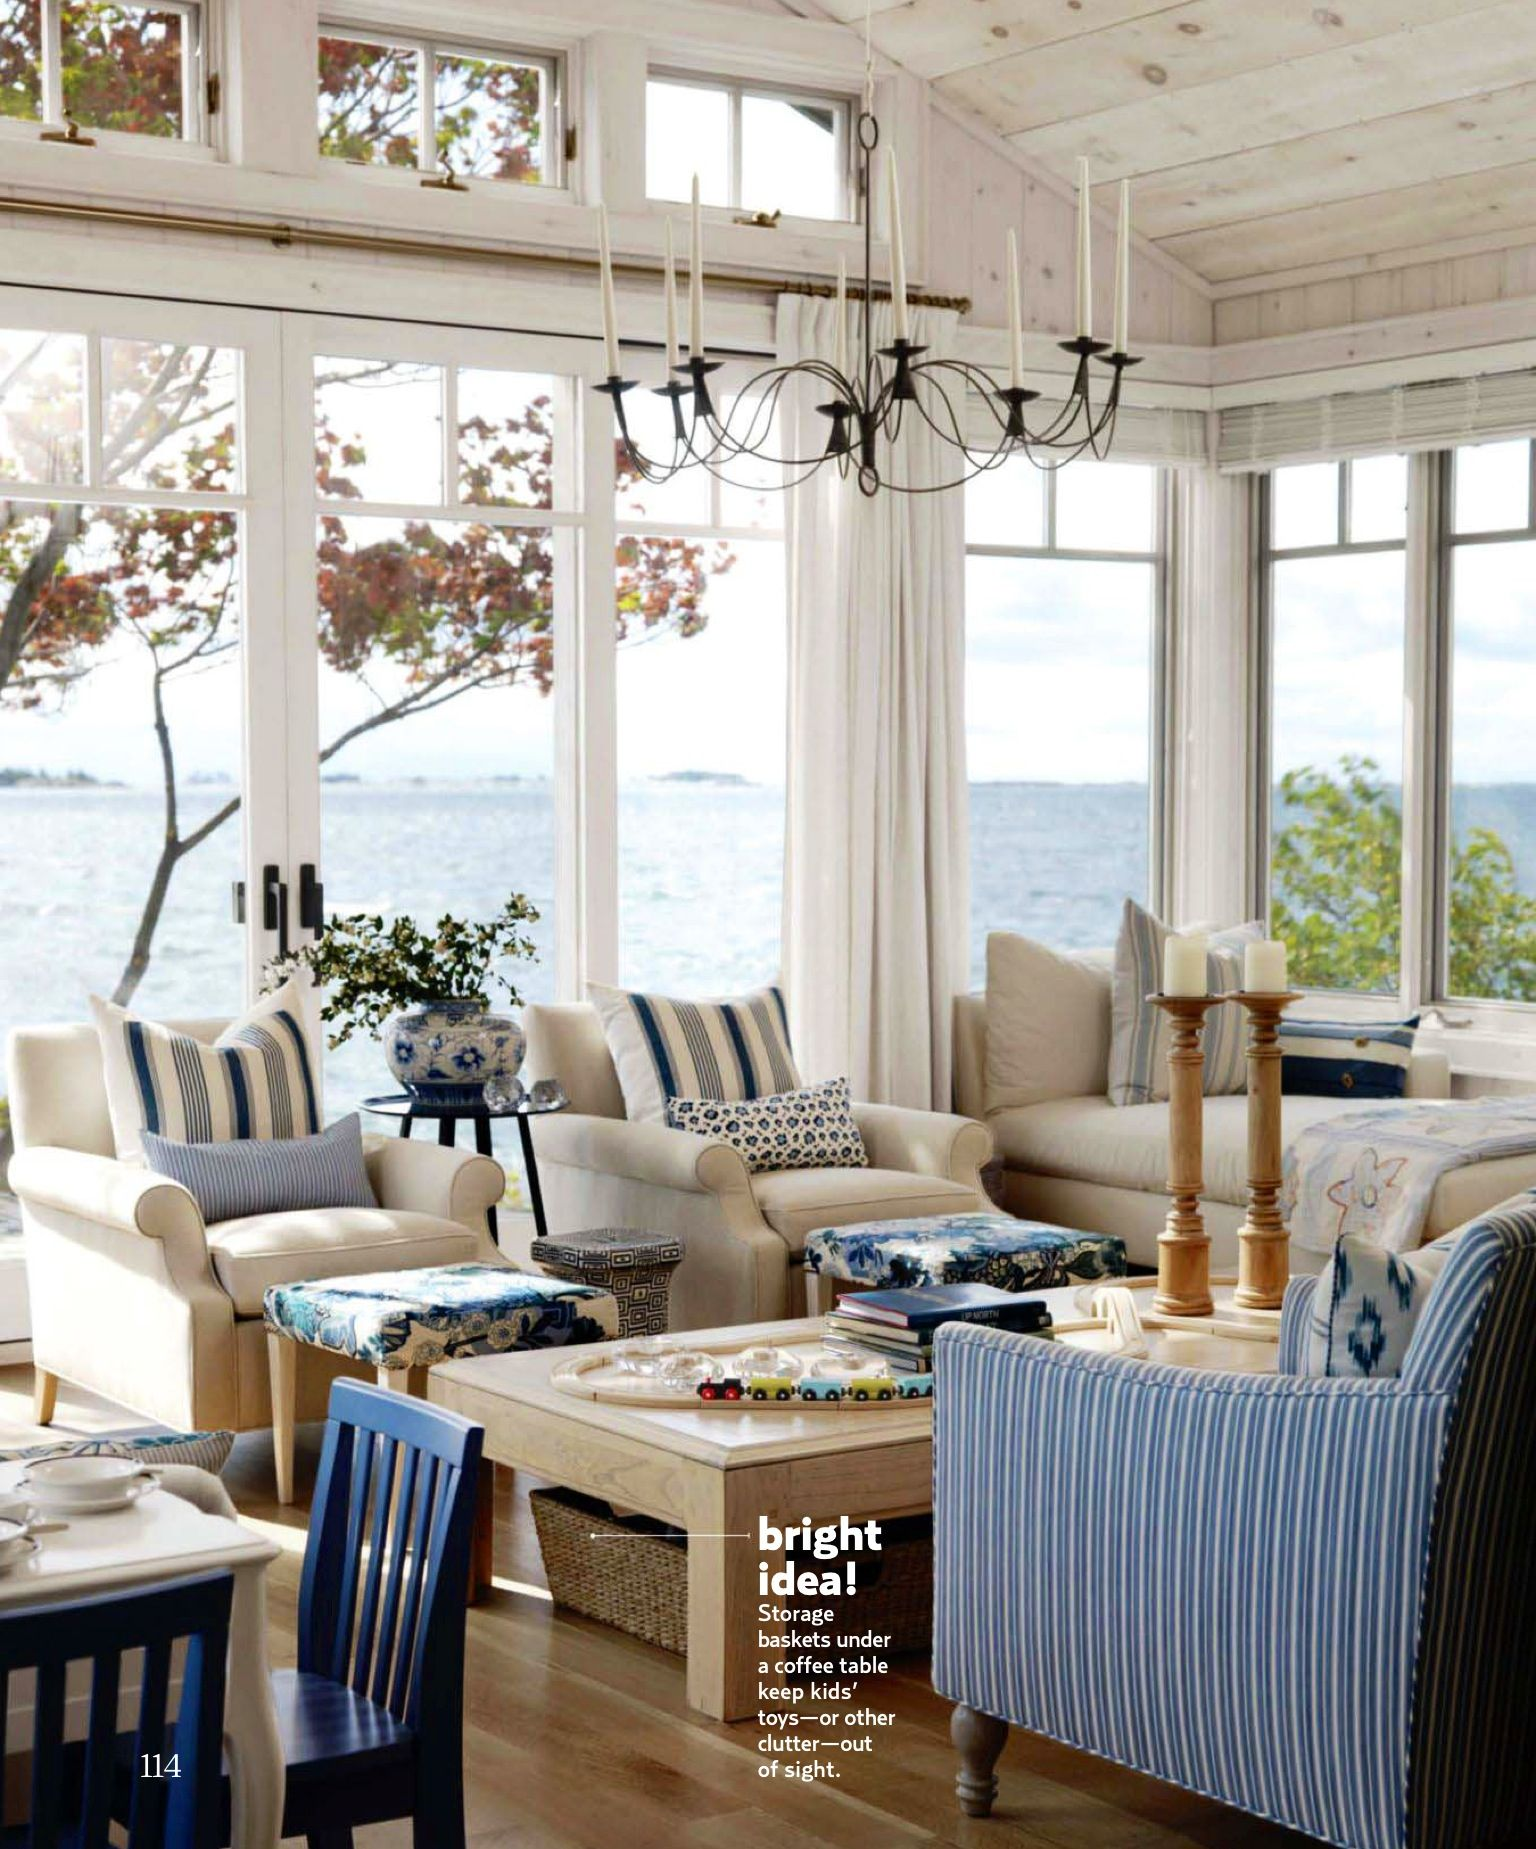 Pine Brook Boulder Mountain Residence Living Room: Sarah Richardson's Summer Cottage Featured In Country